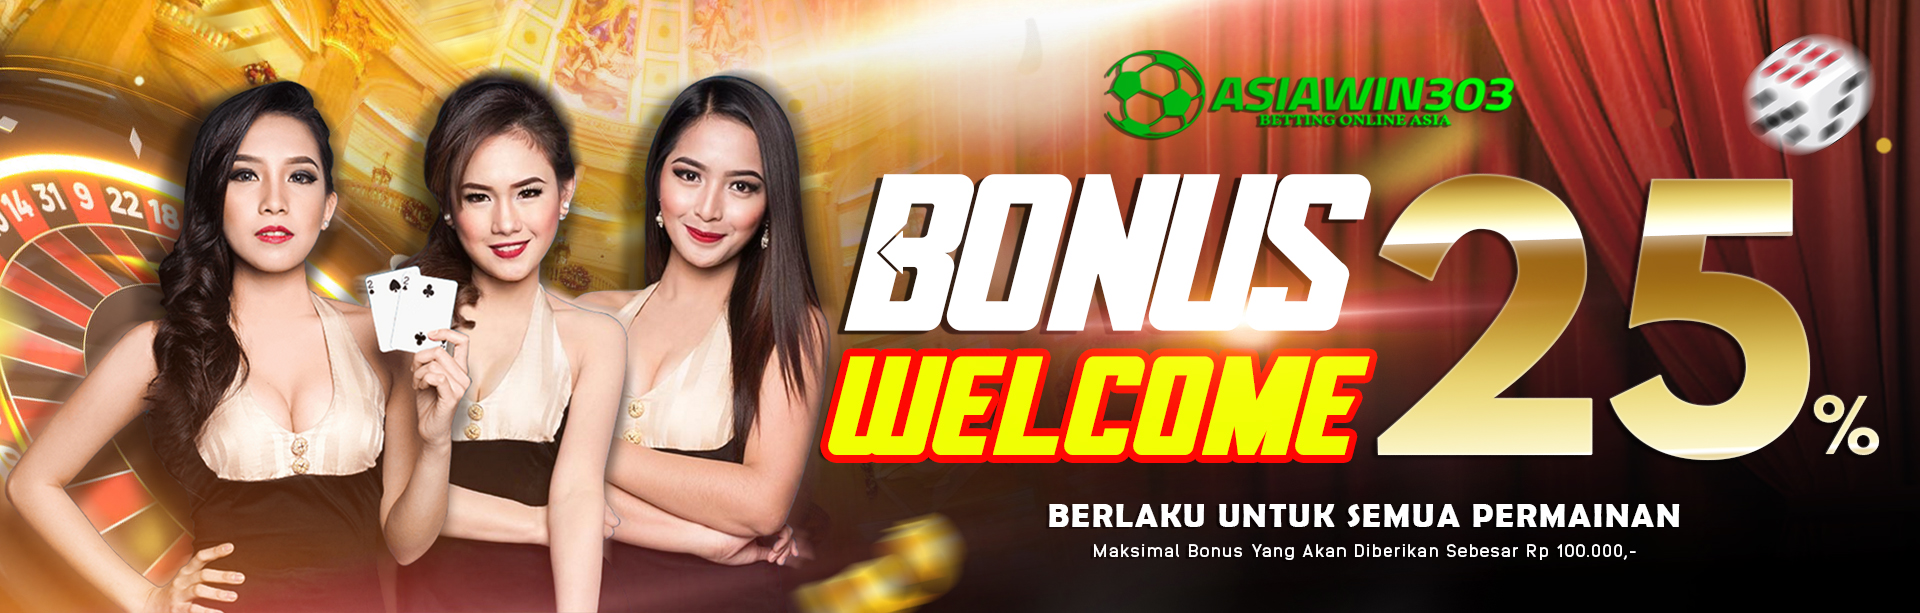 WELCOME BONUS 25%